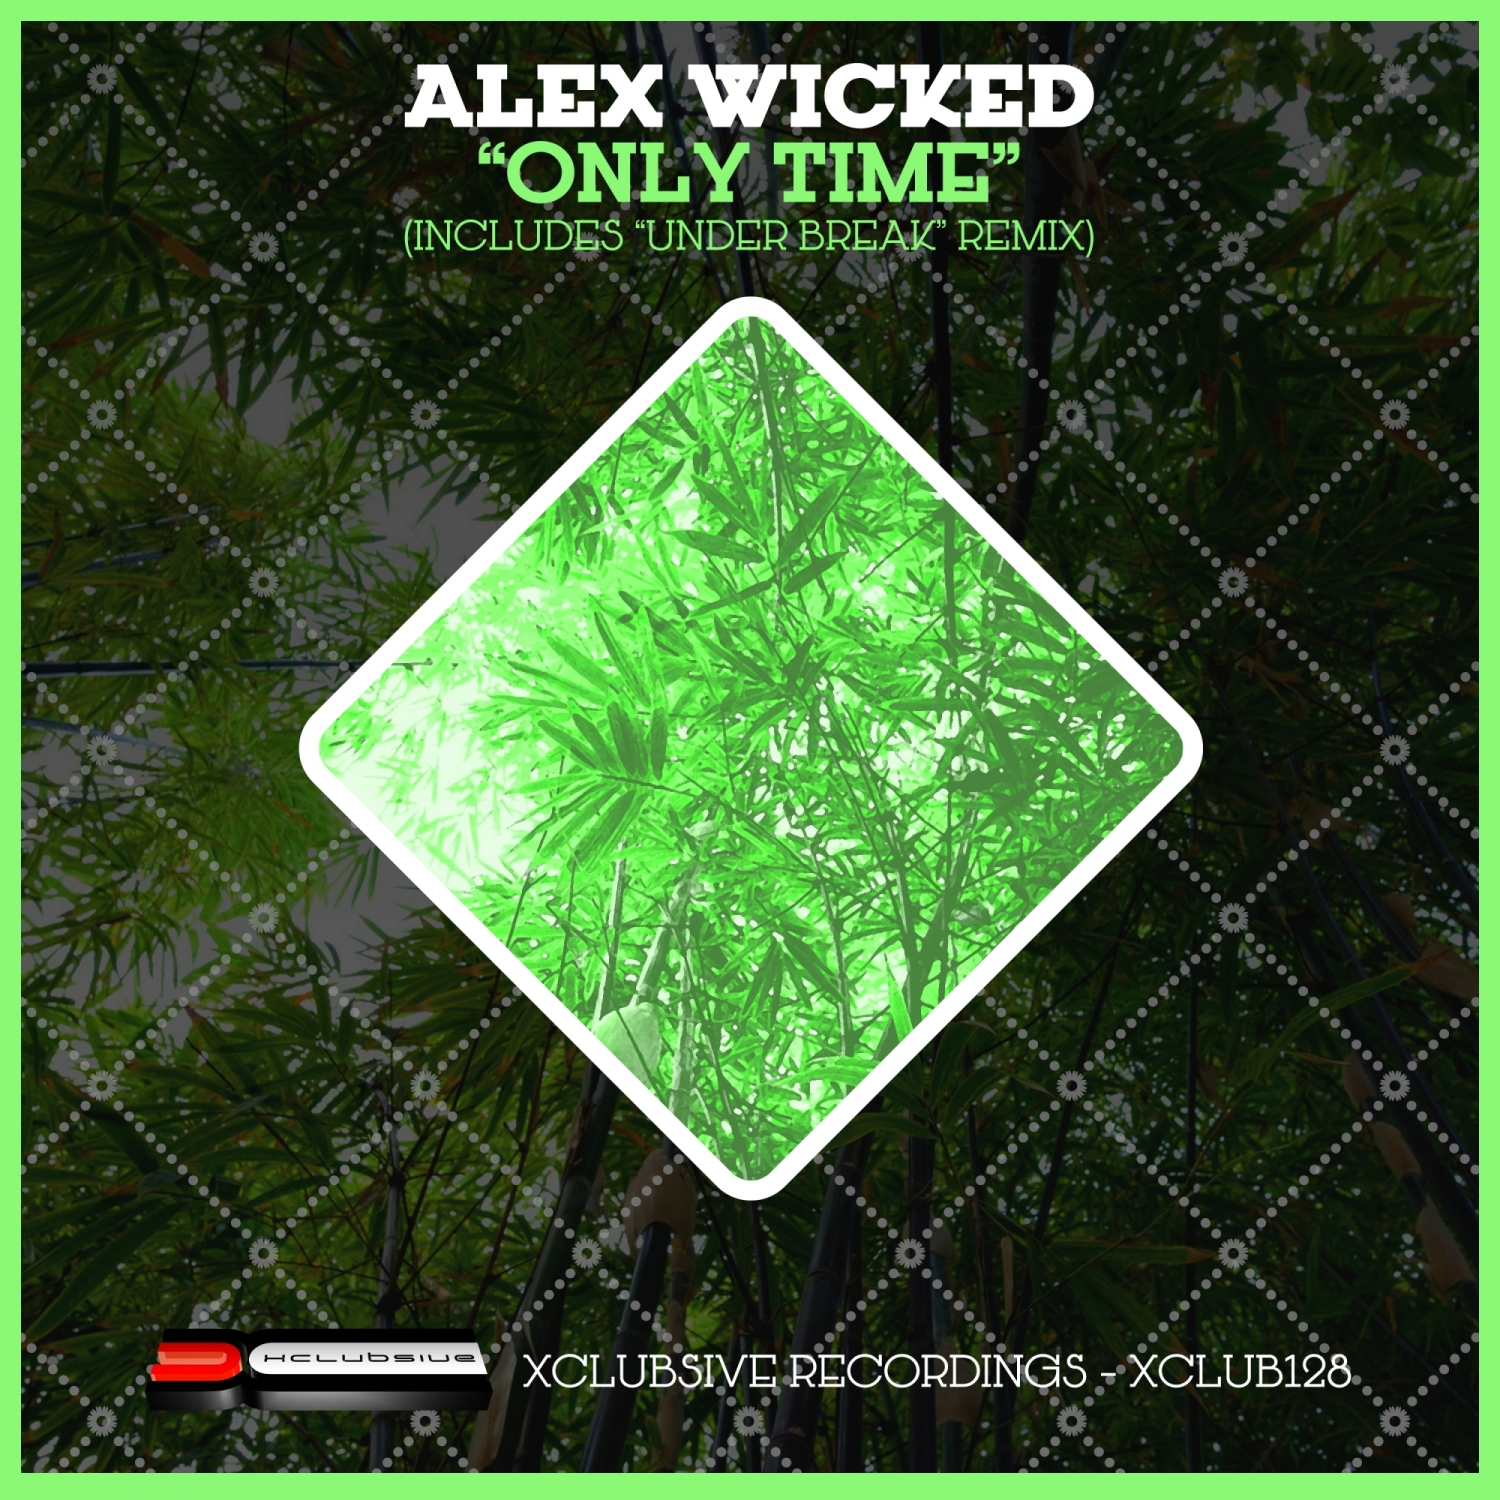 Alex Wicked - Only Time (Original Mix)